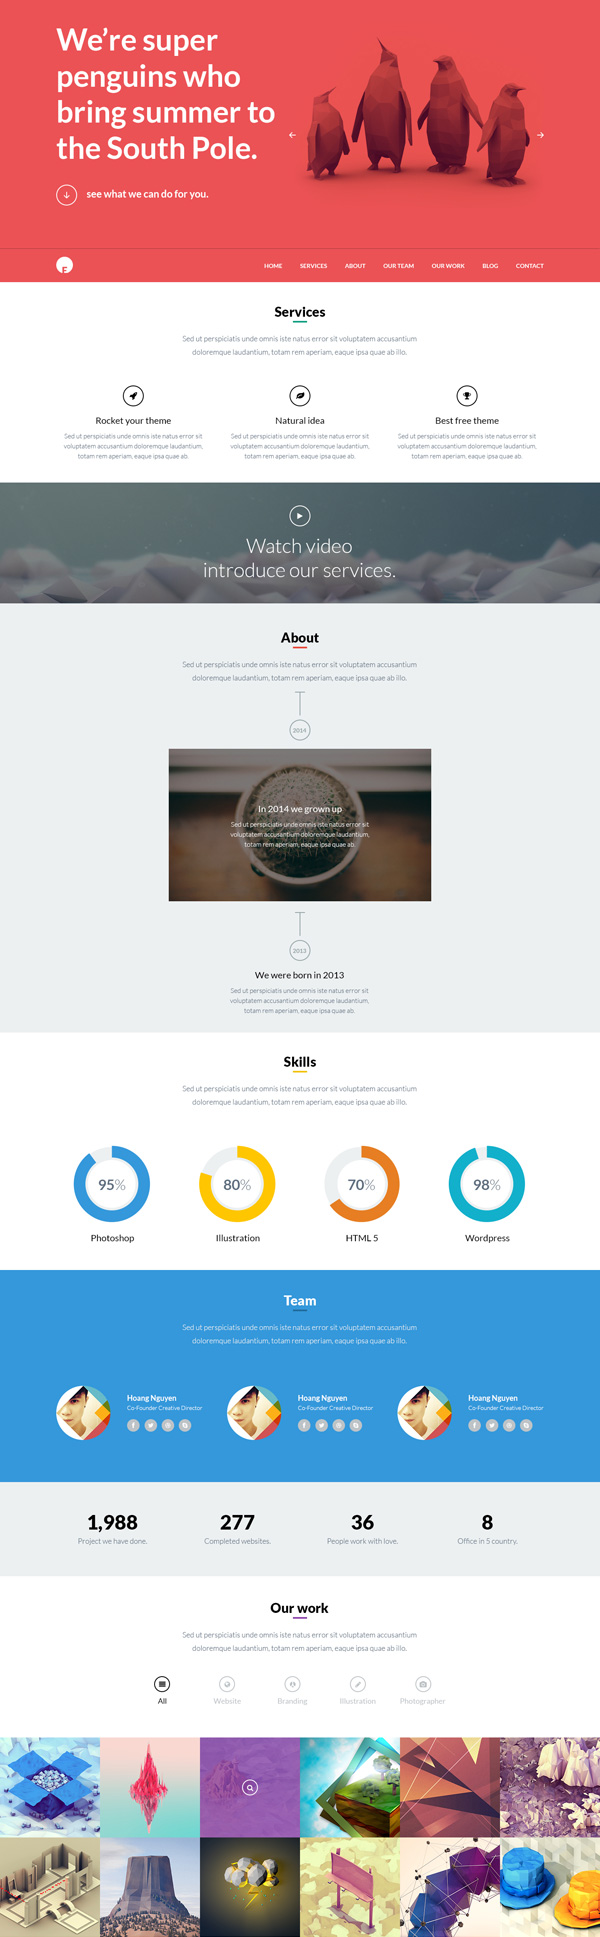 Oneengine multi purpose one page wordpress theme psd for Wordpress theme with multiple page templates